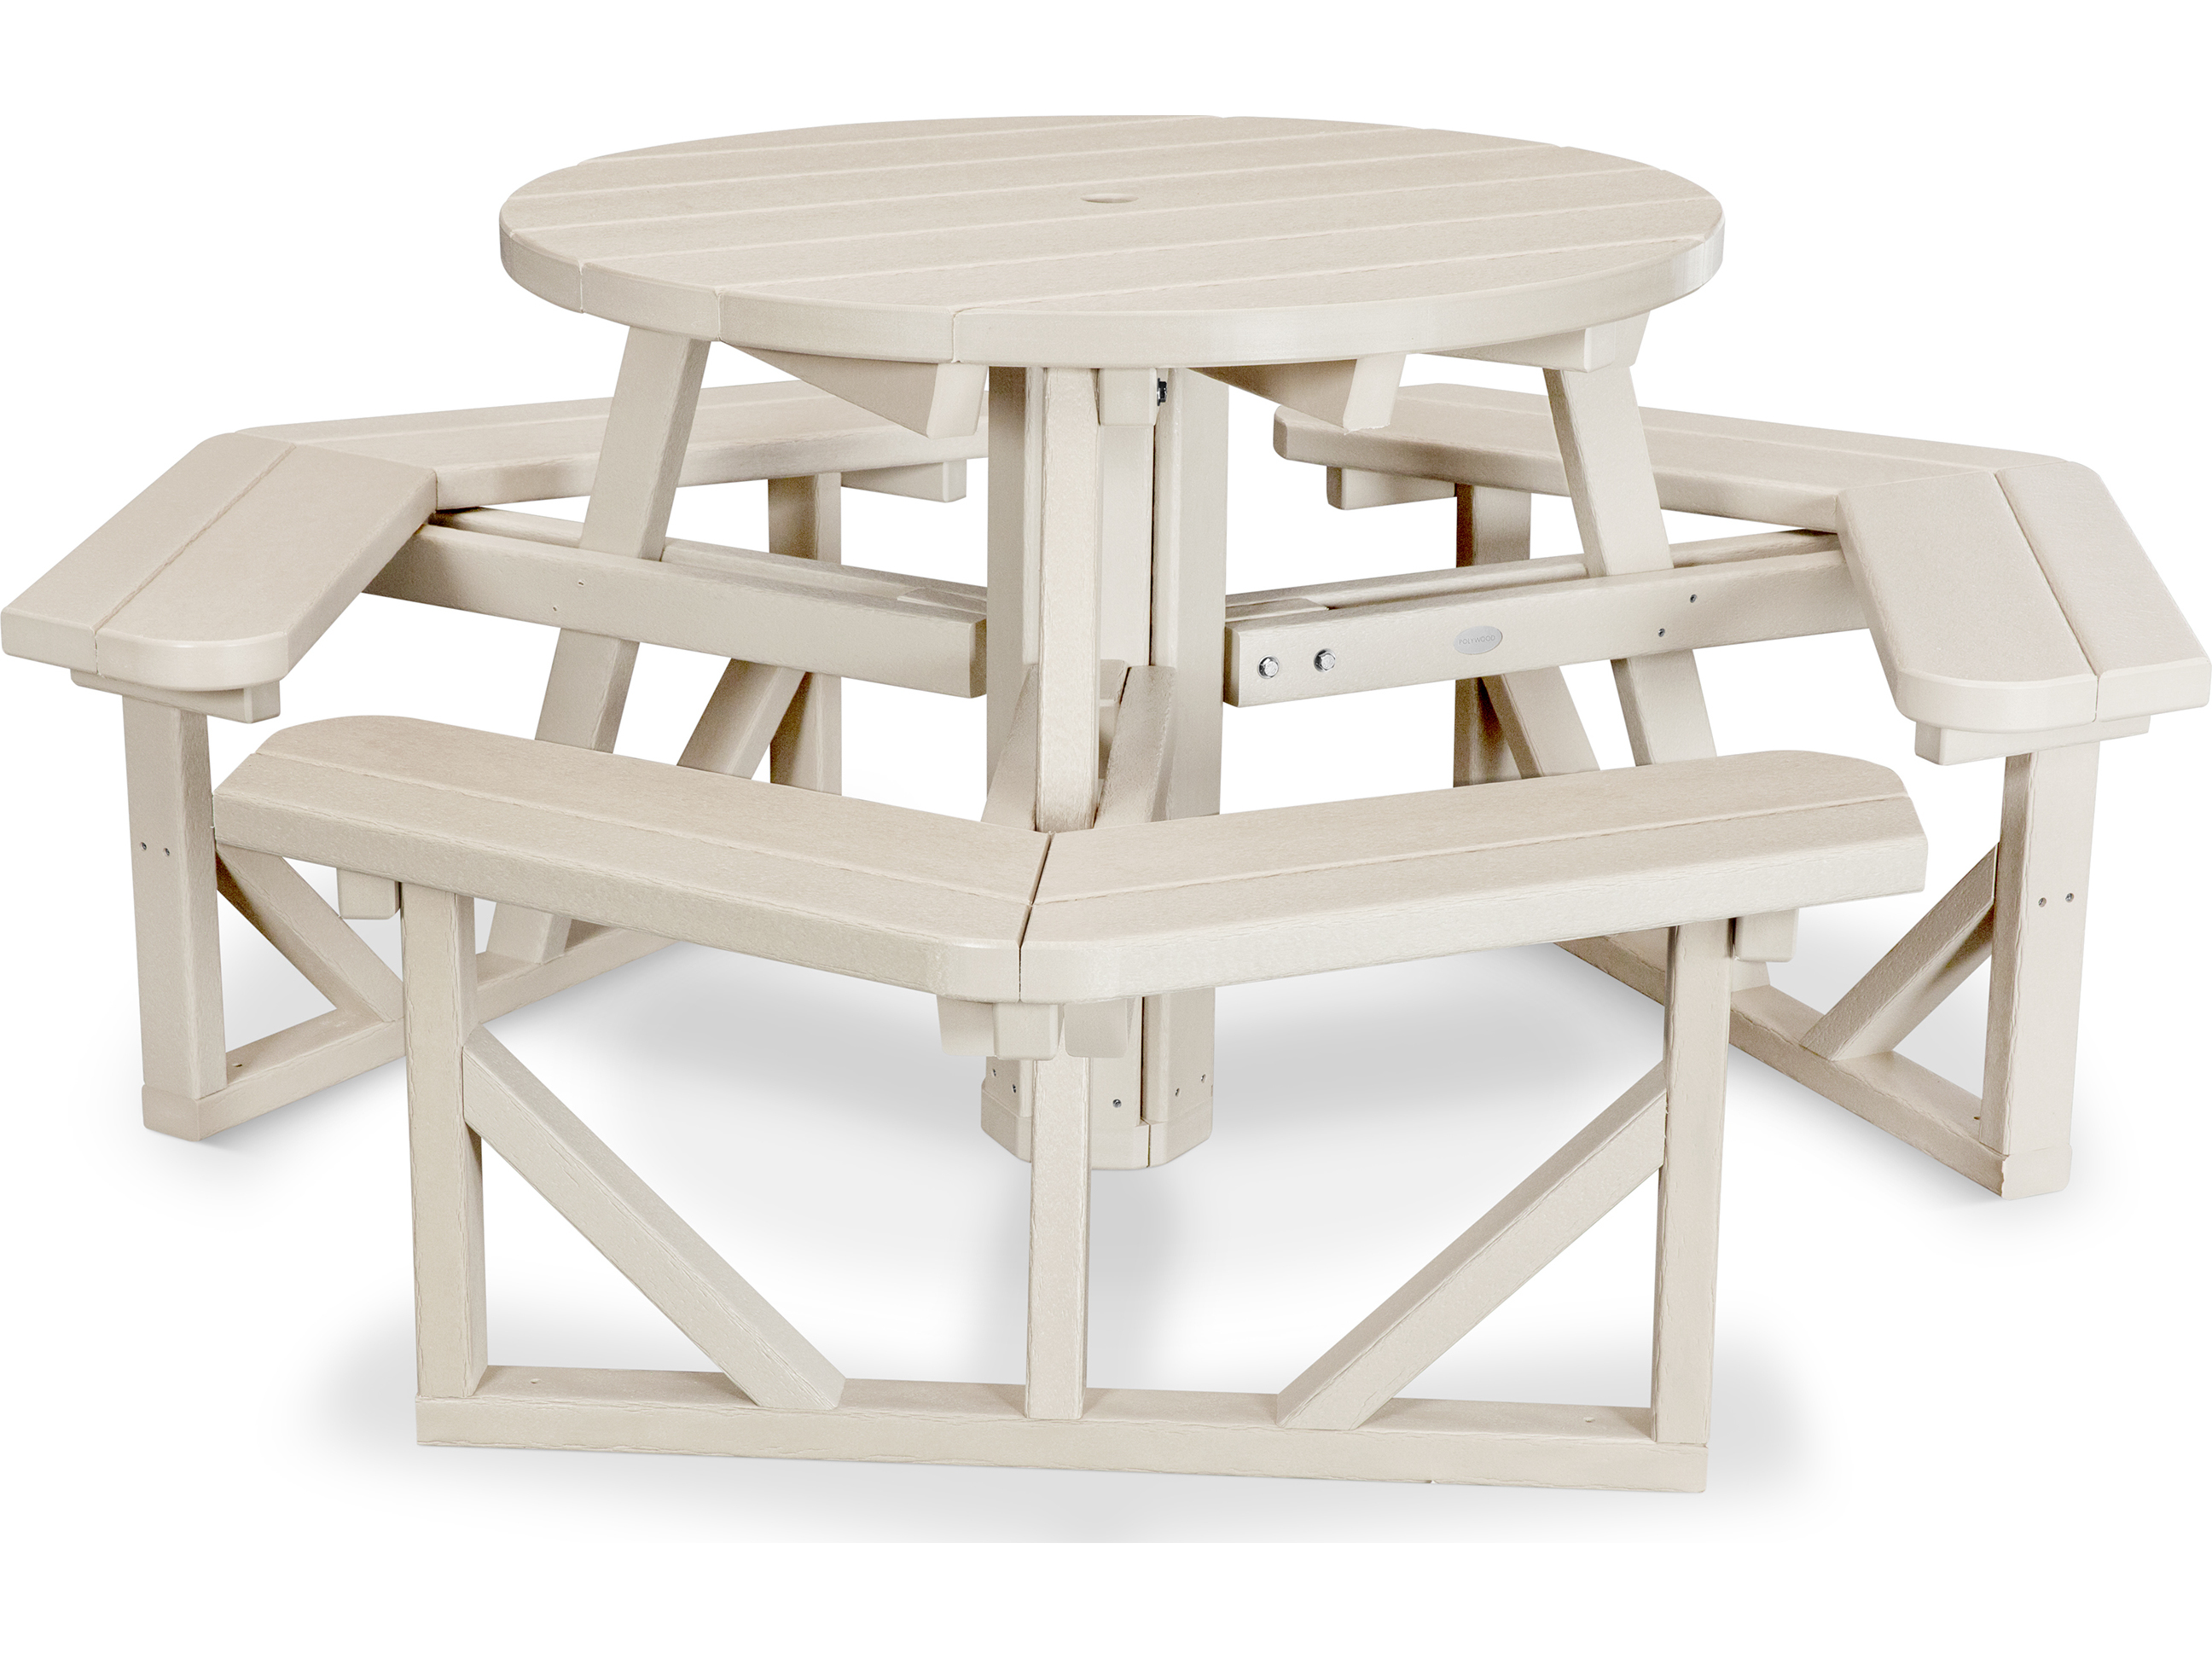 ... Picnic Tables · + Shop All POLYWOOD® · Hover To Zoom